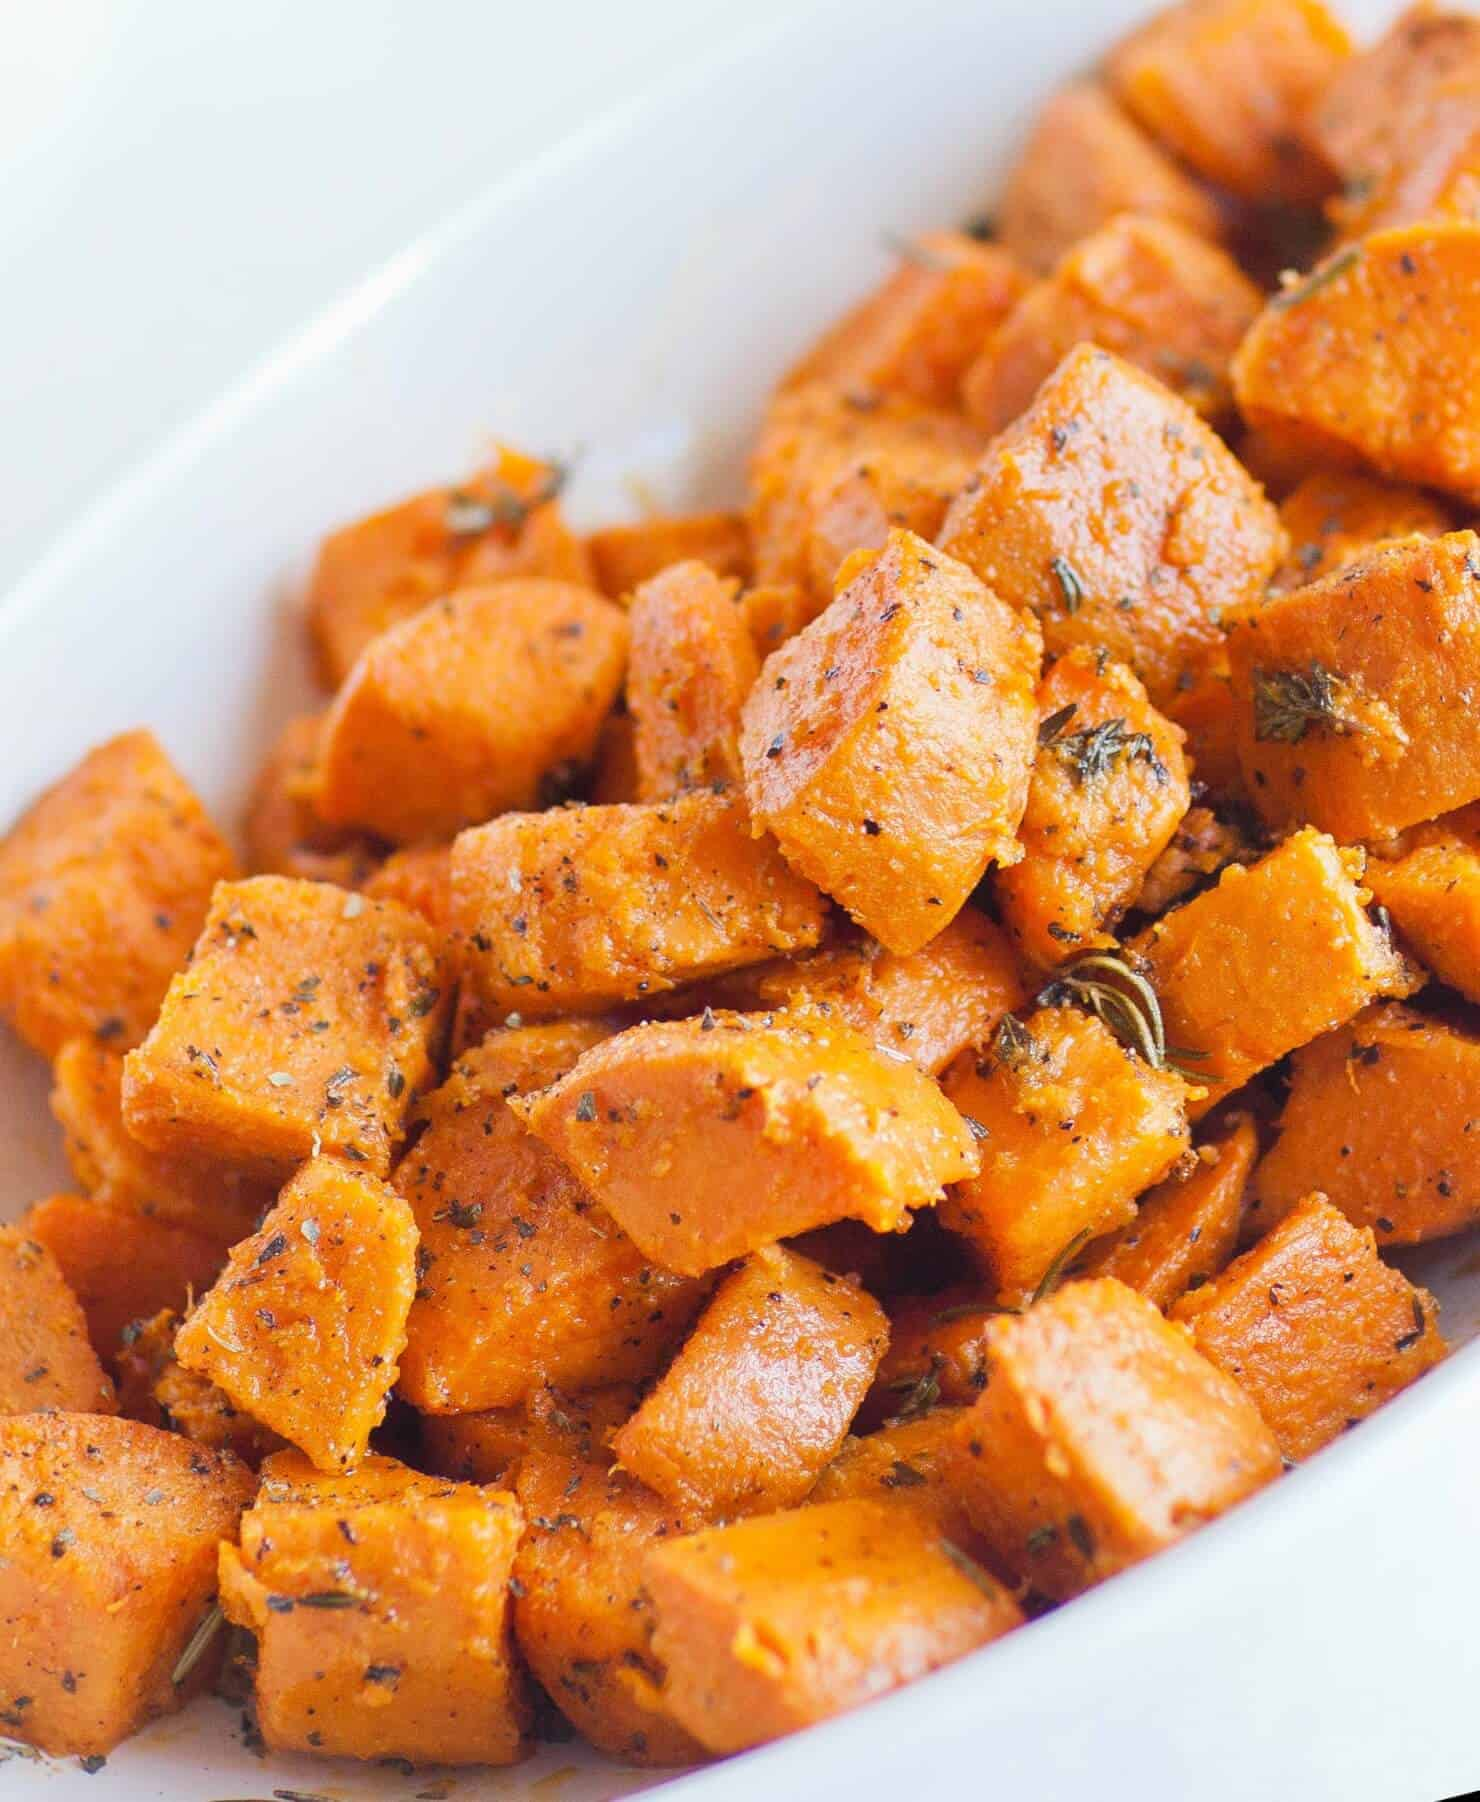 oven roasted sweet potatoes side dish recipe